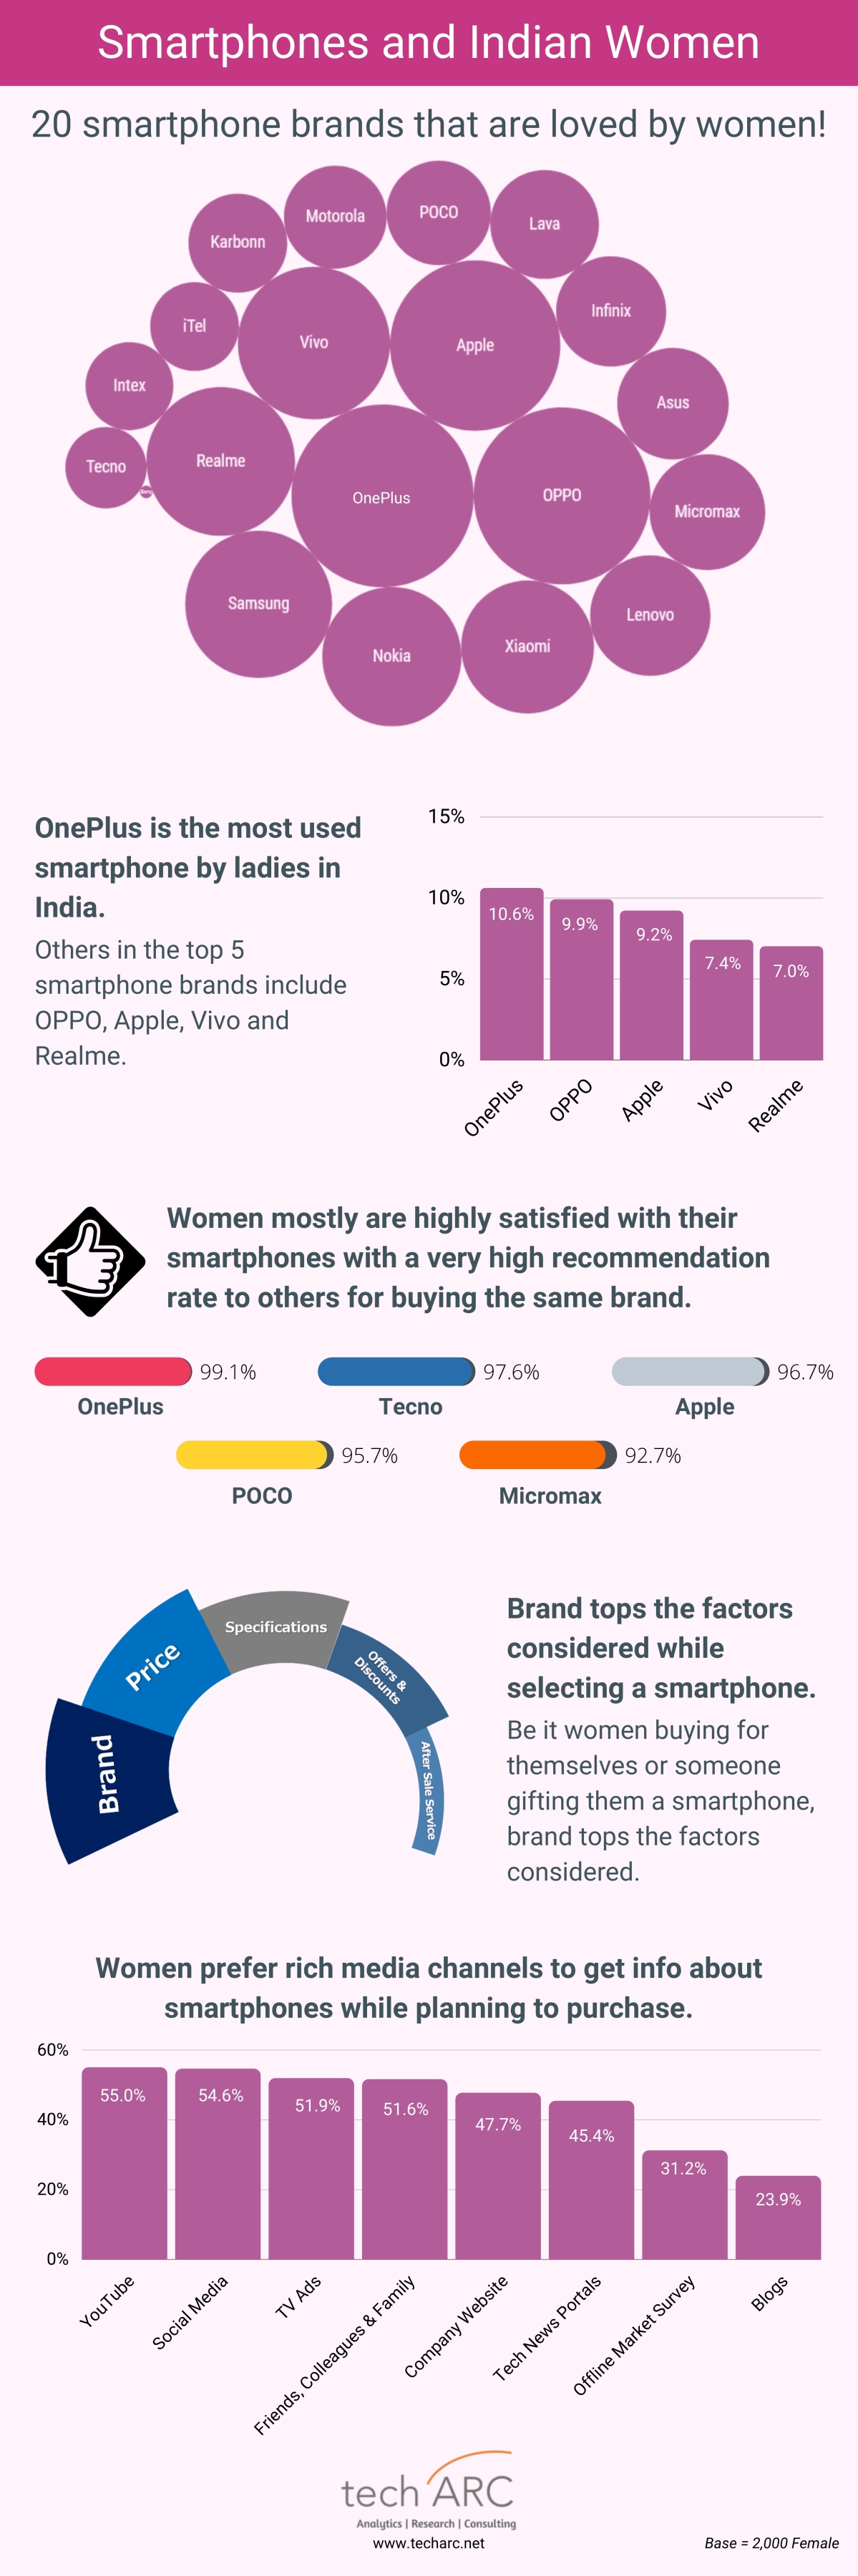 OnePlus most used smartphone brand by women: techARC survey